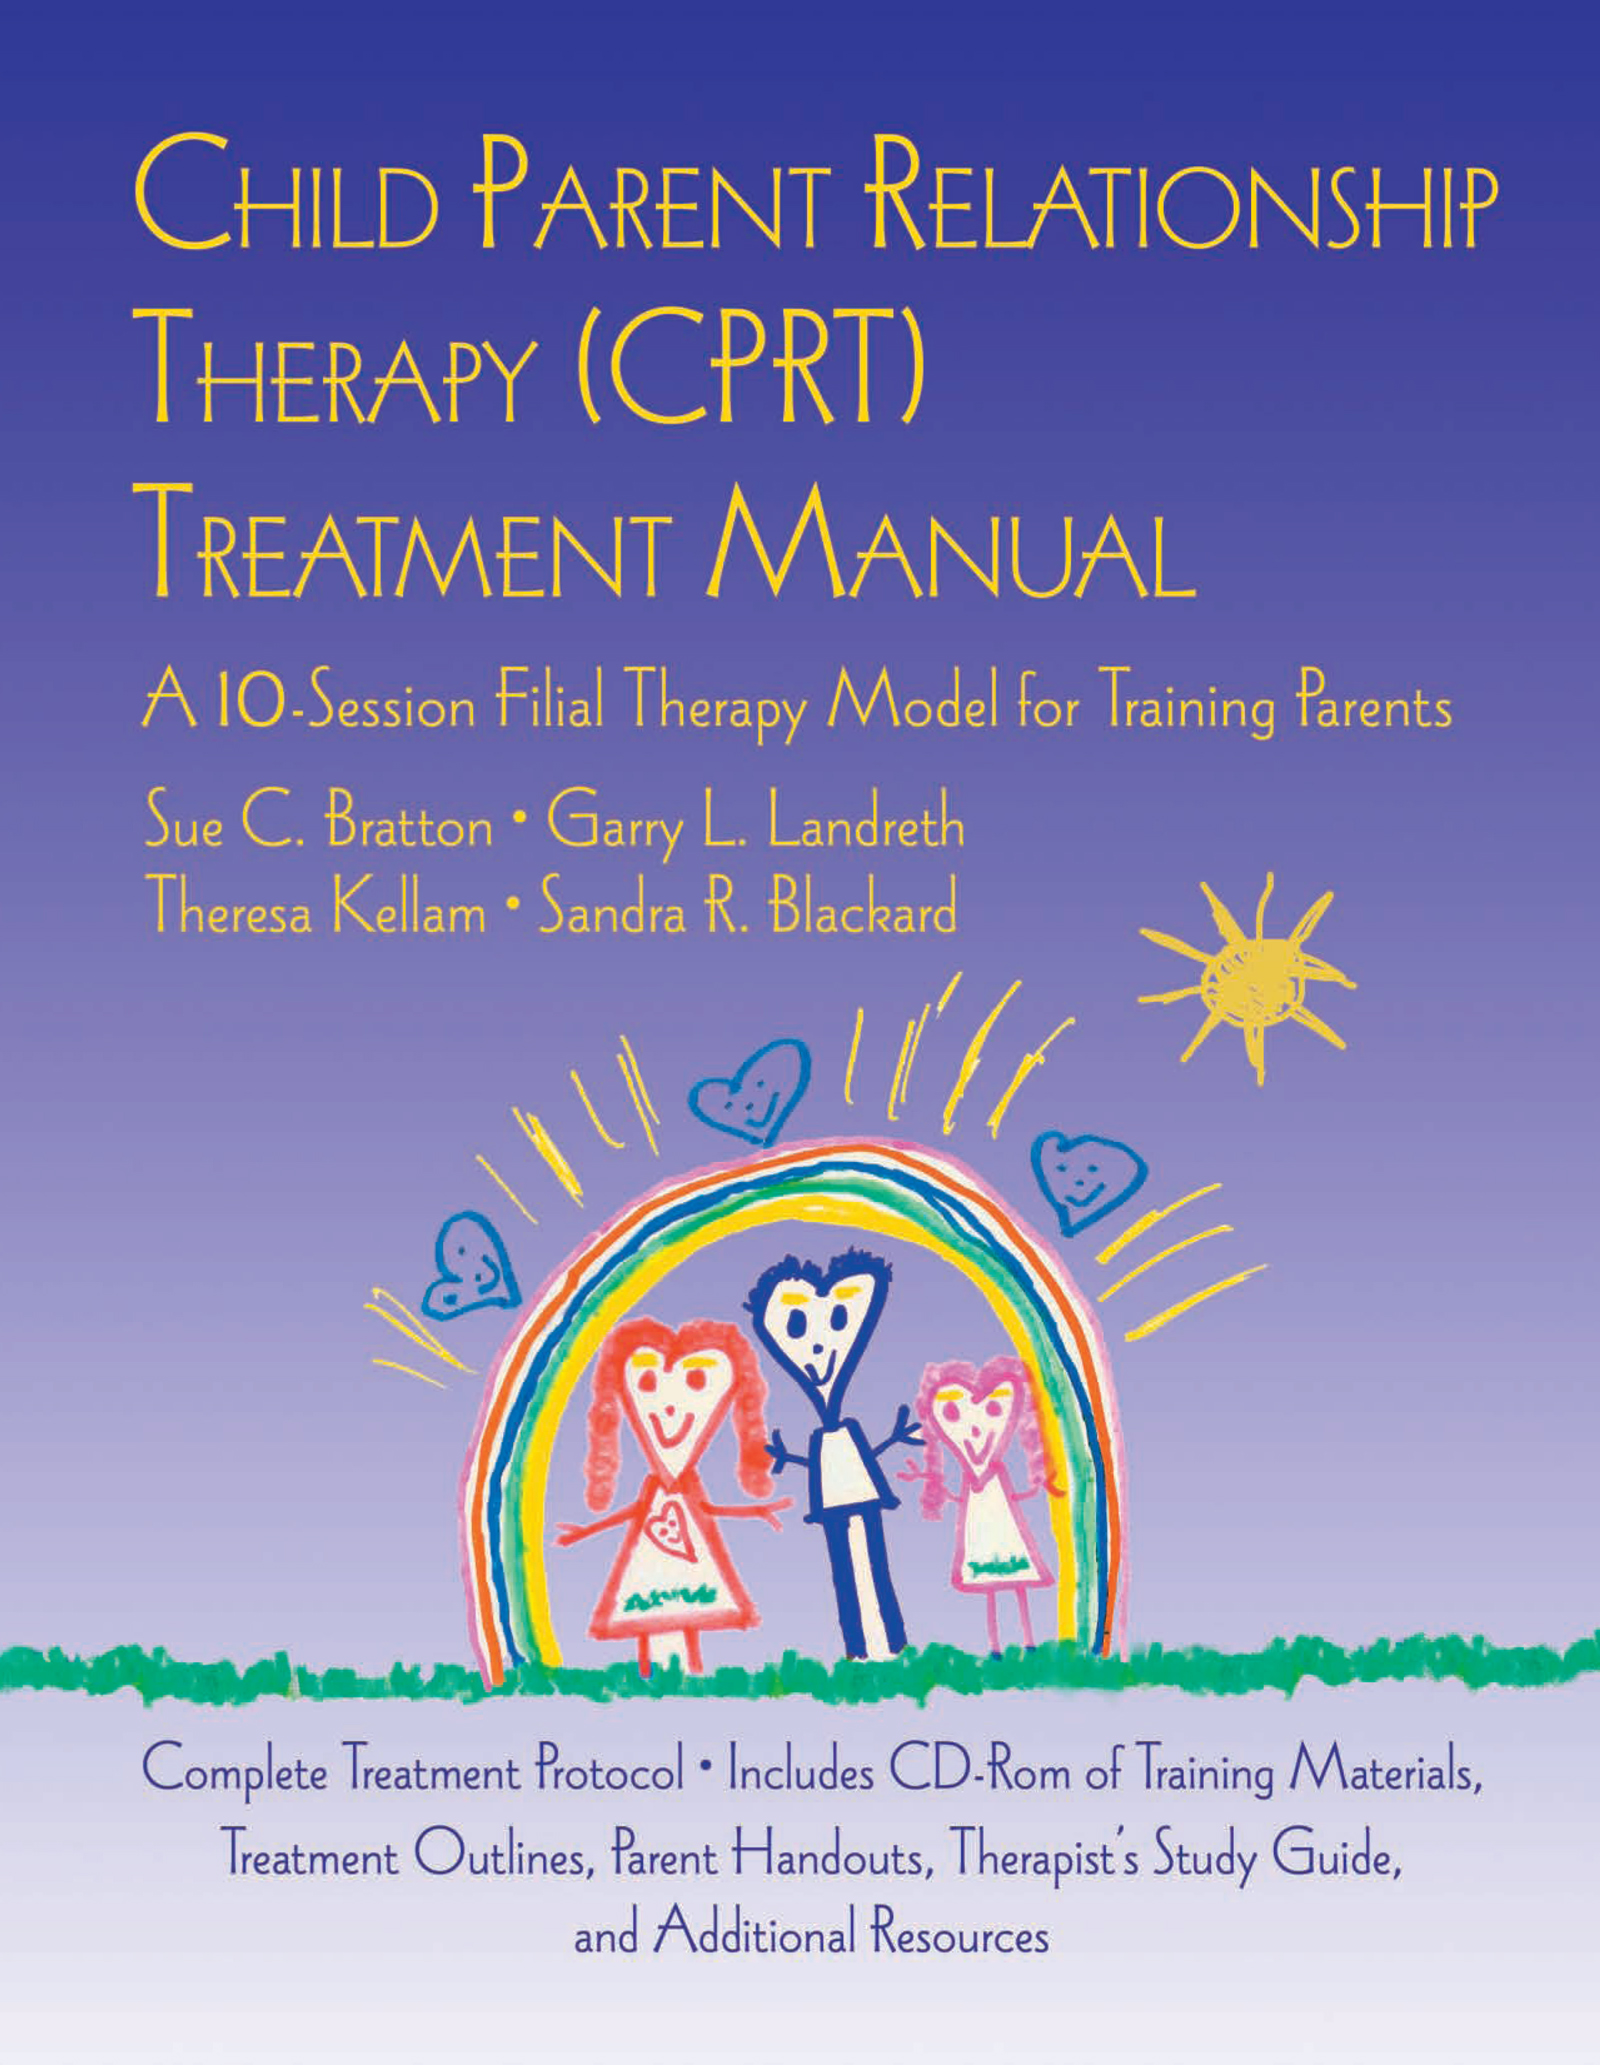 Child Parent Relationship Therapy (CPRT) Treatment Manual: A 10-Session Filial Therapy Model for Training Parents (Paperback) book cover